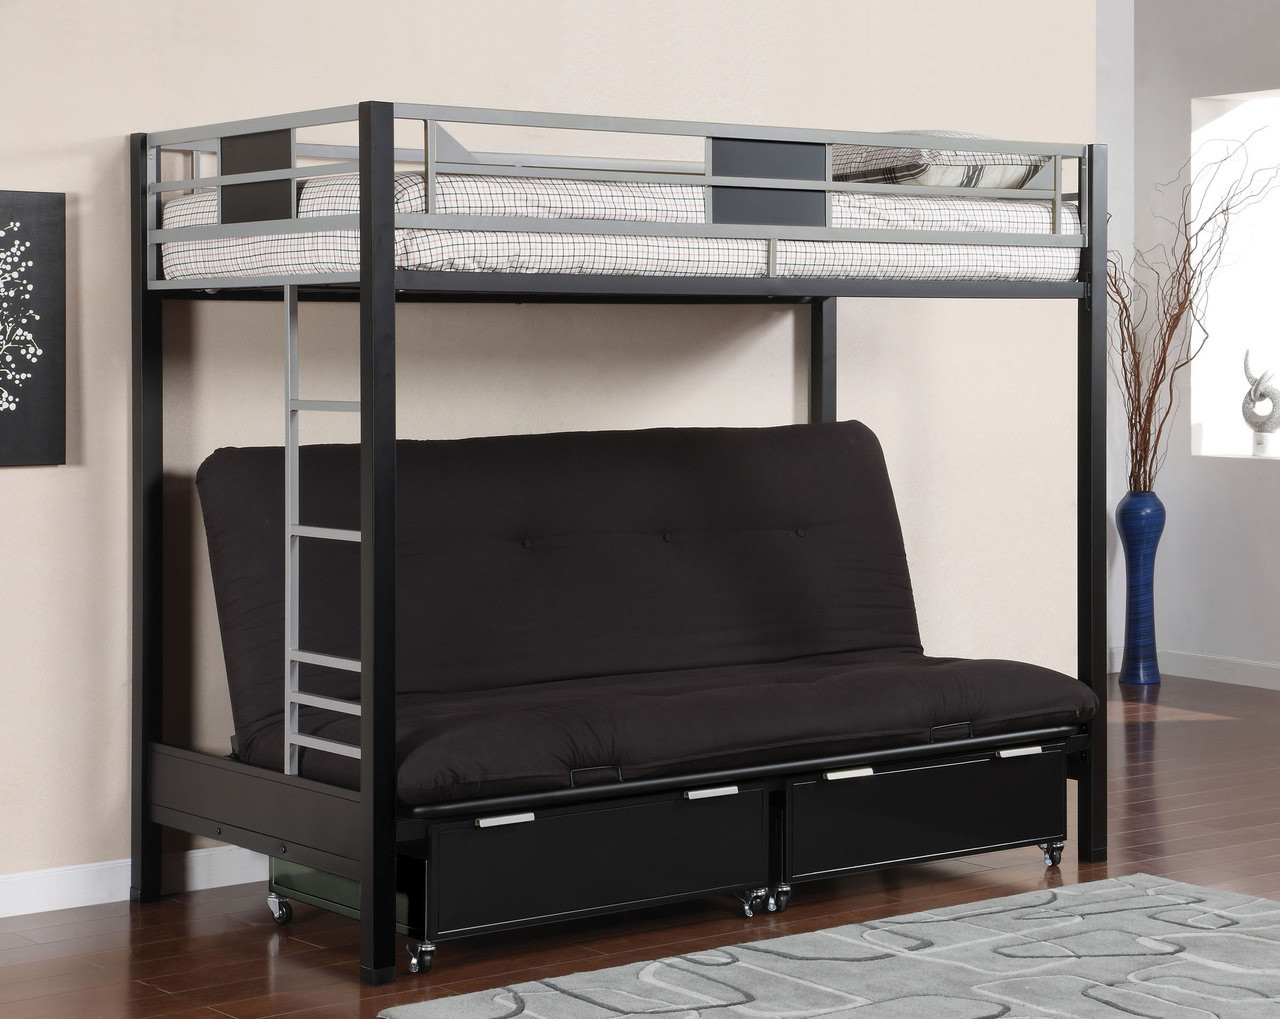 Silver & Black Metal Twin Futon Bunk Bed | Futon Bunk Bed - Silver & Black Metal Twin Futon Bunk Bed, Youth Furniture